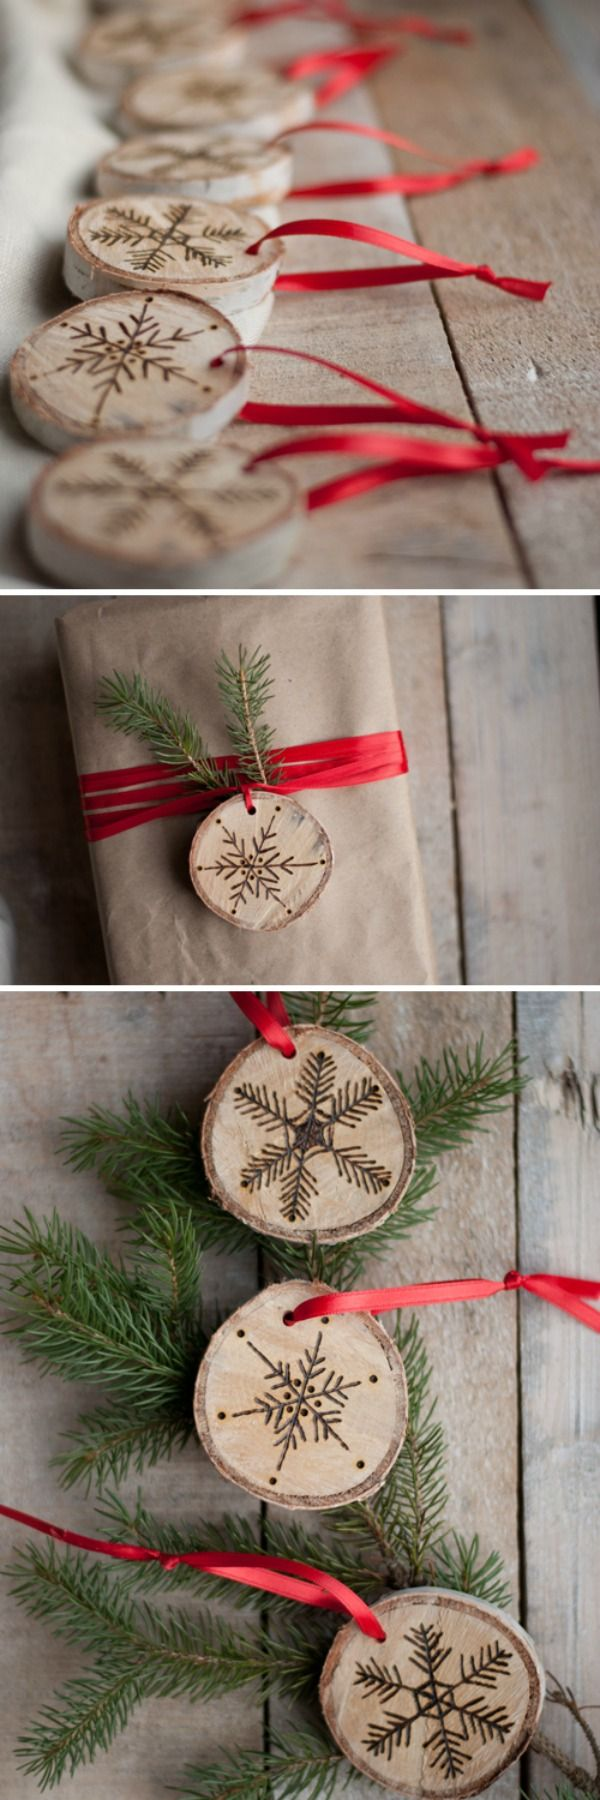 10+ DIY Christmas Ornaments